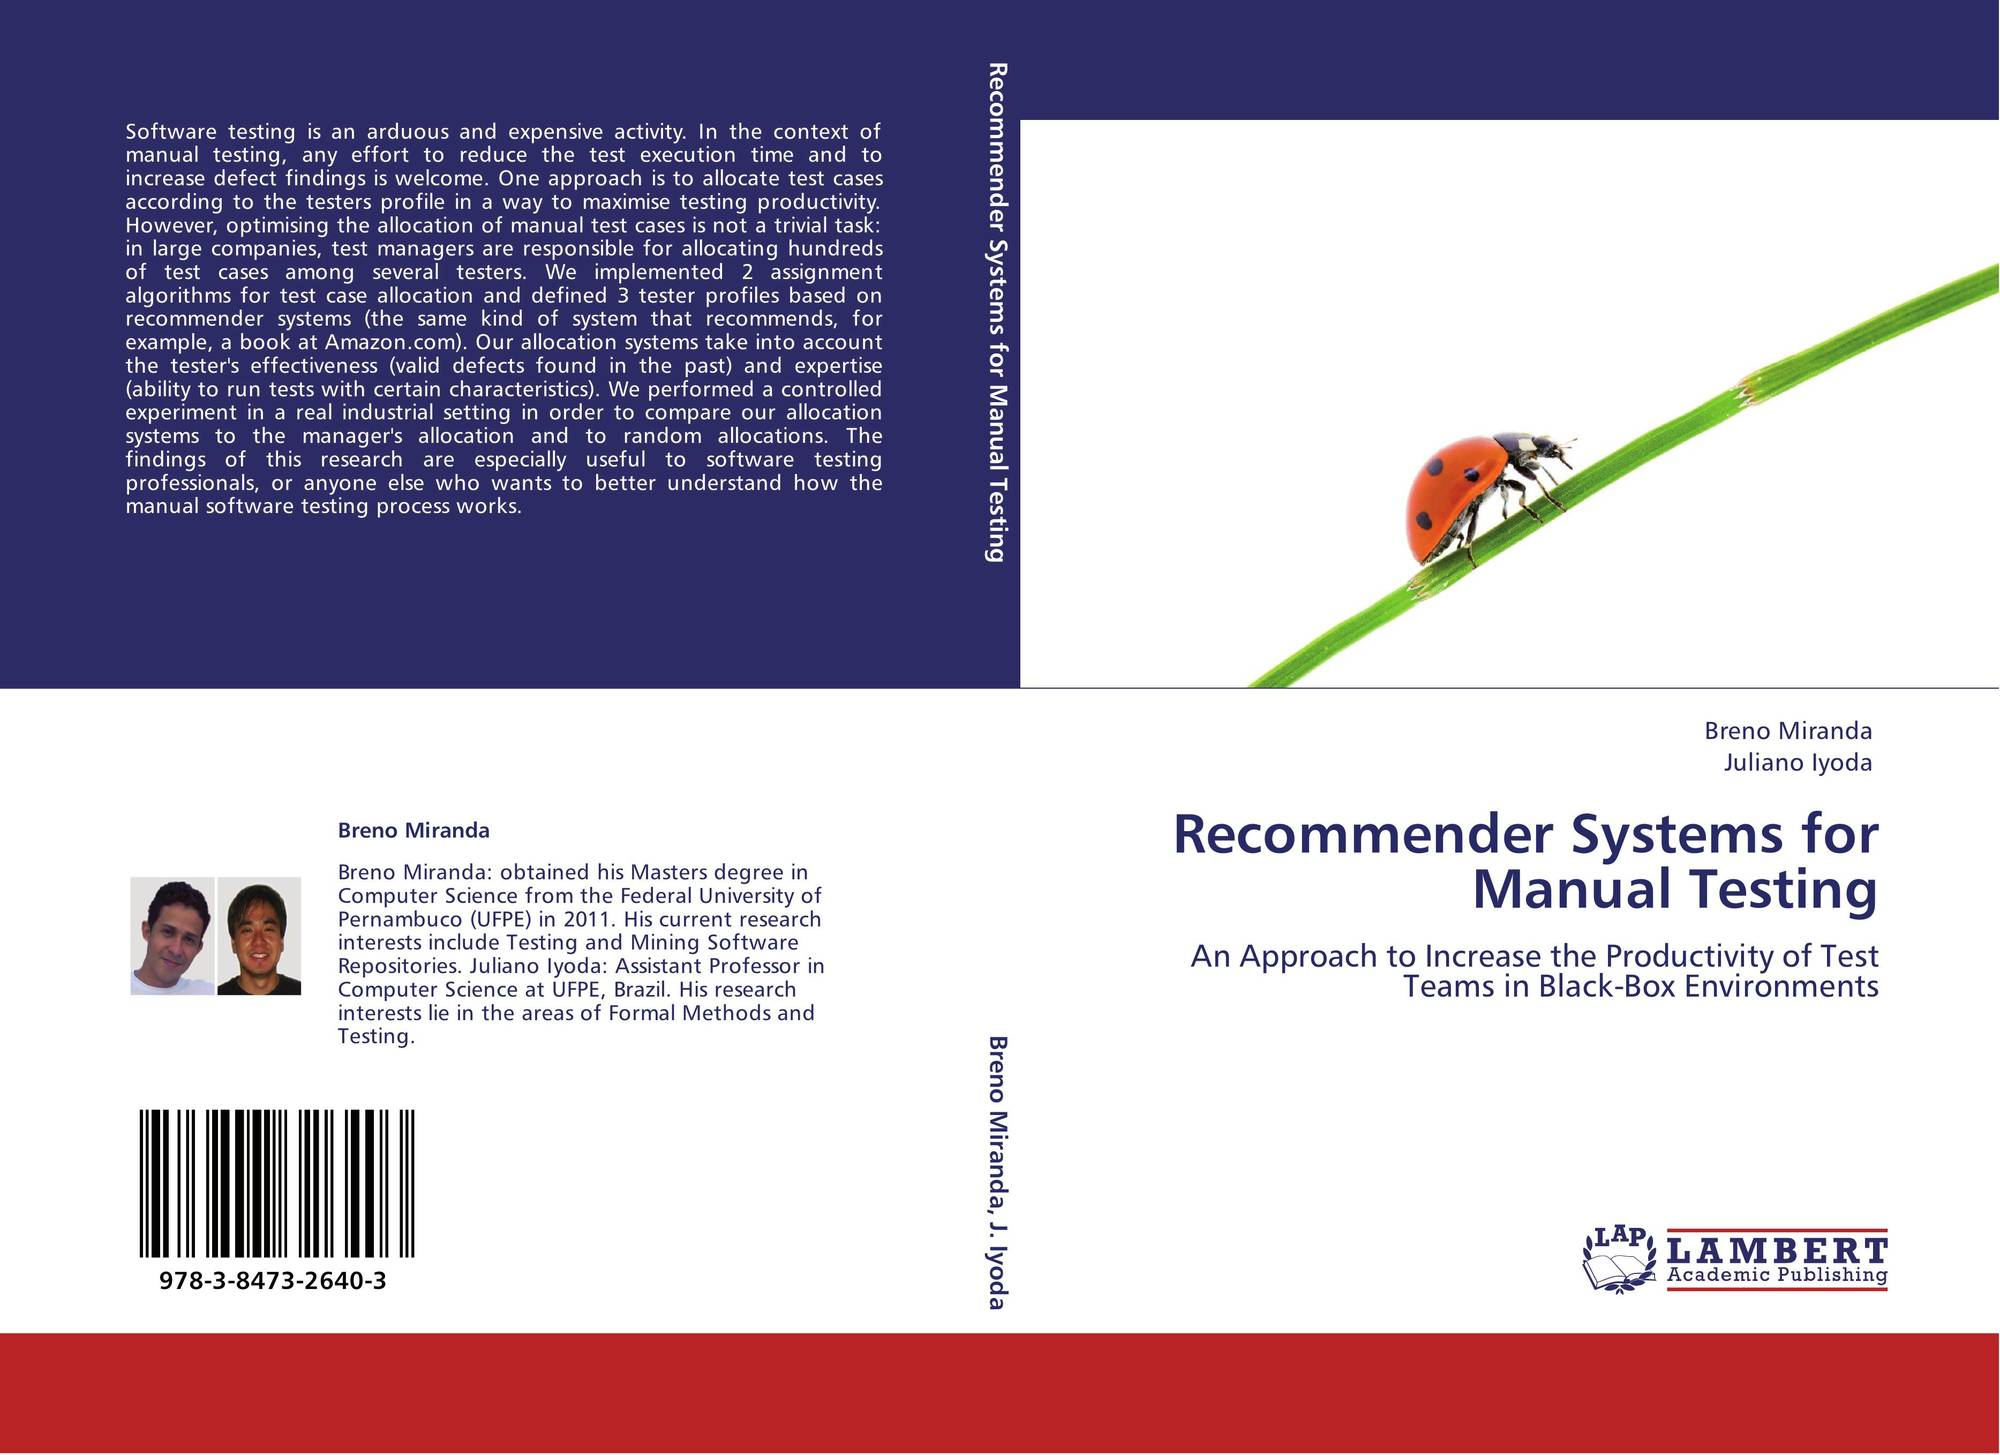 Recommender Systems For Manual Testing, 9783847326403. Follow Up On Resume. Resume Examples Sales Associate Retail. Characteristics Of A Good Resume. Patient Care Technician Resume No Experience. Sample Resume For Computer Science Student Fresher. Resume For Dentist Job. What Skills To Put On Resume For Retail. Dishwasher Responsibilities Resume